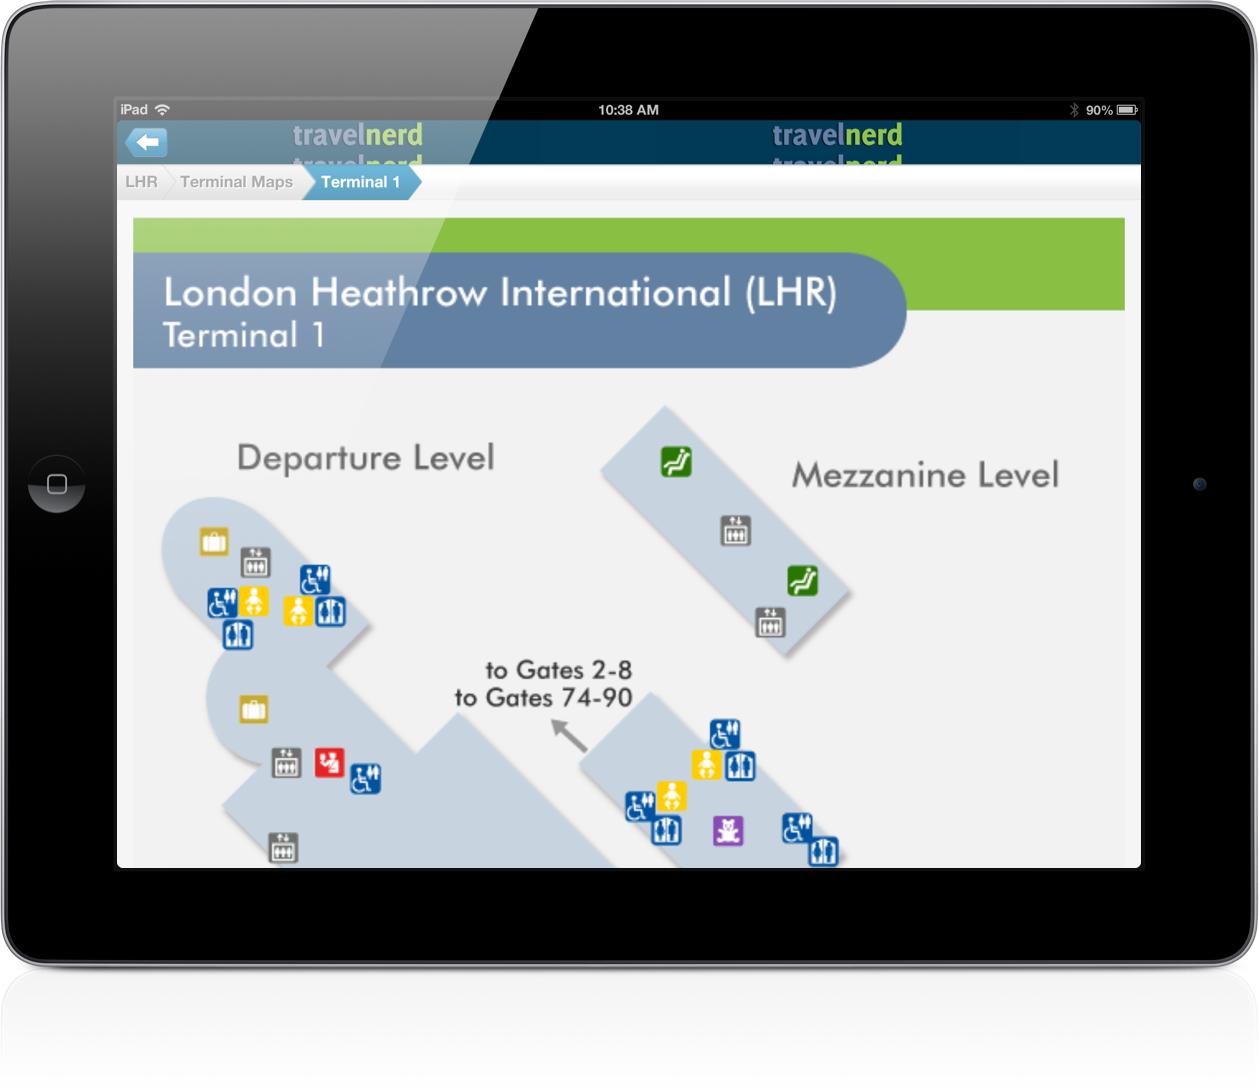 TravelNerds' Airport Guide for iPad